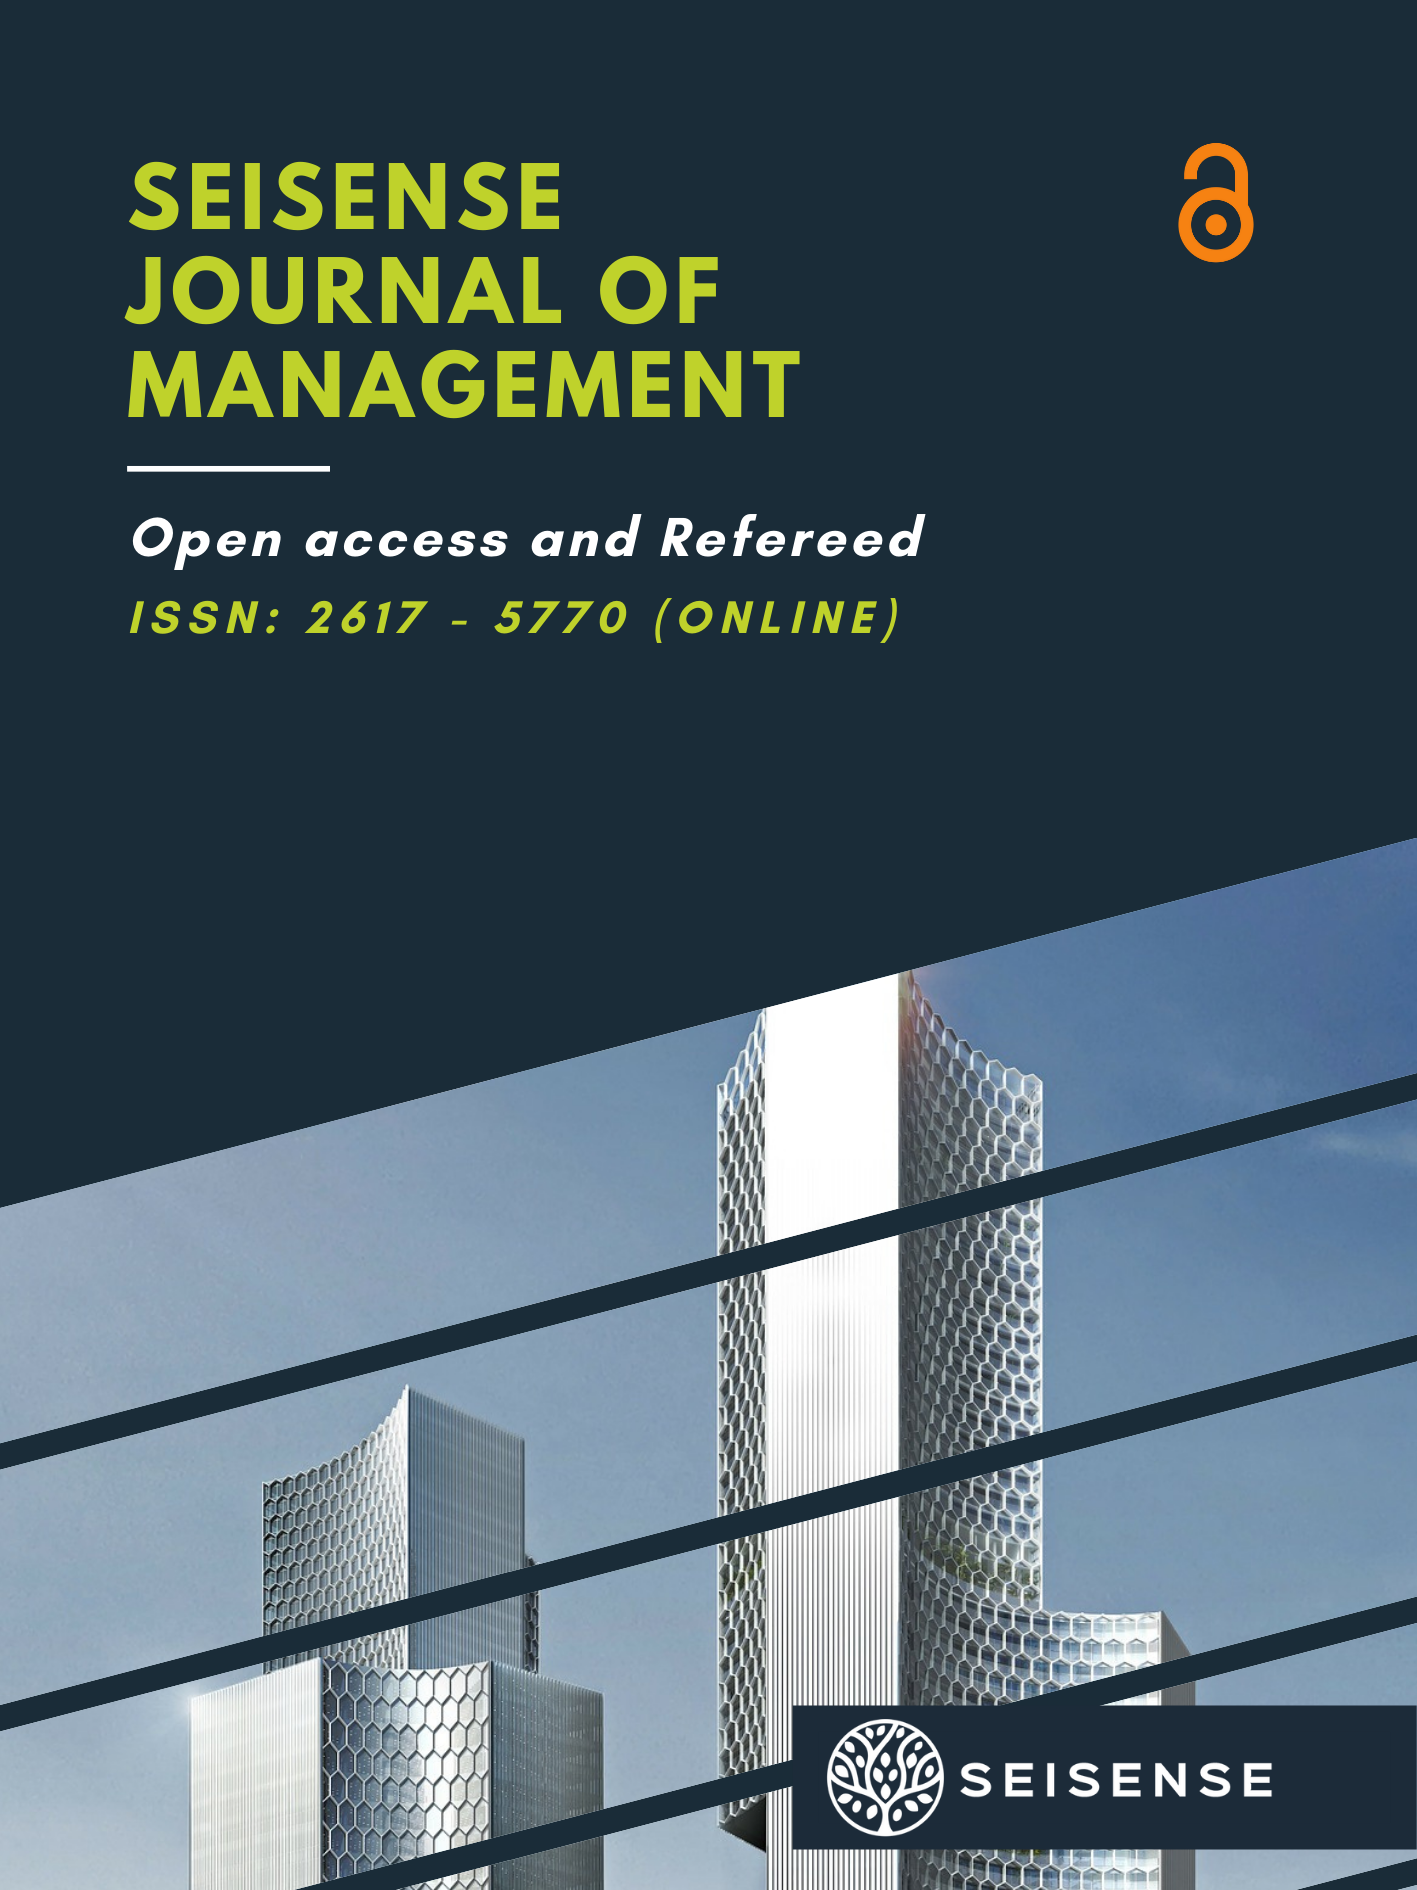 SEISENSE Journal of Management